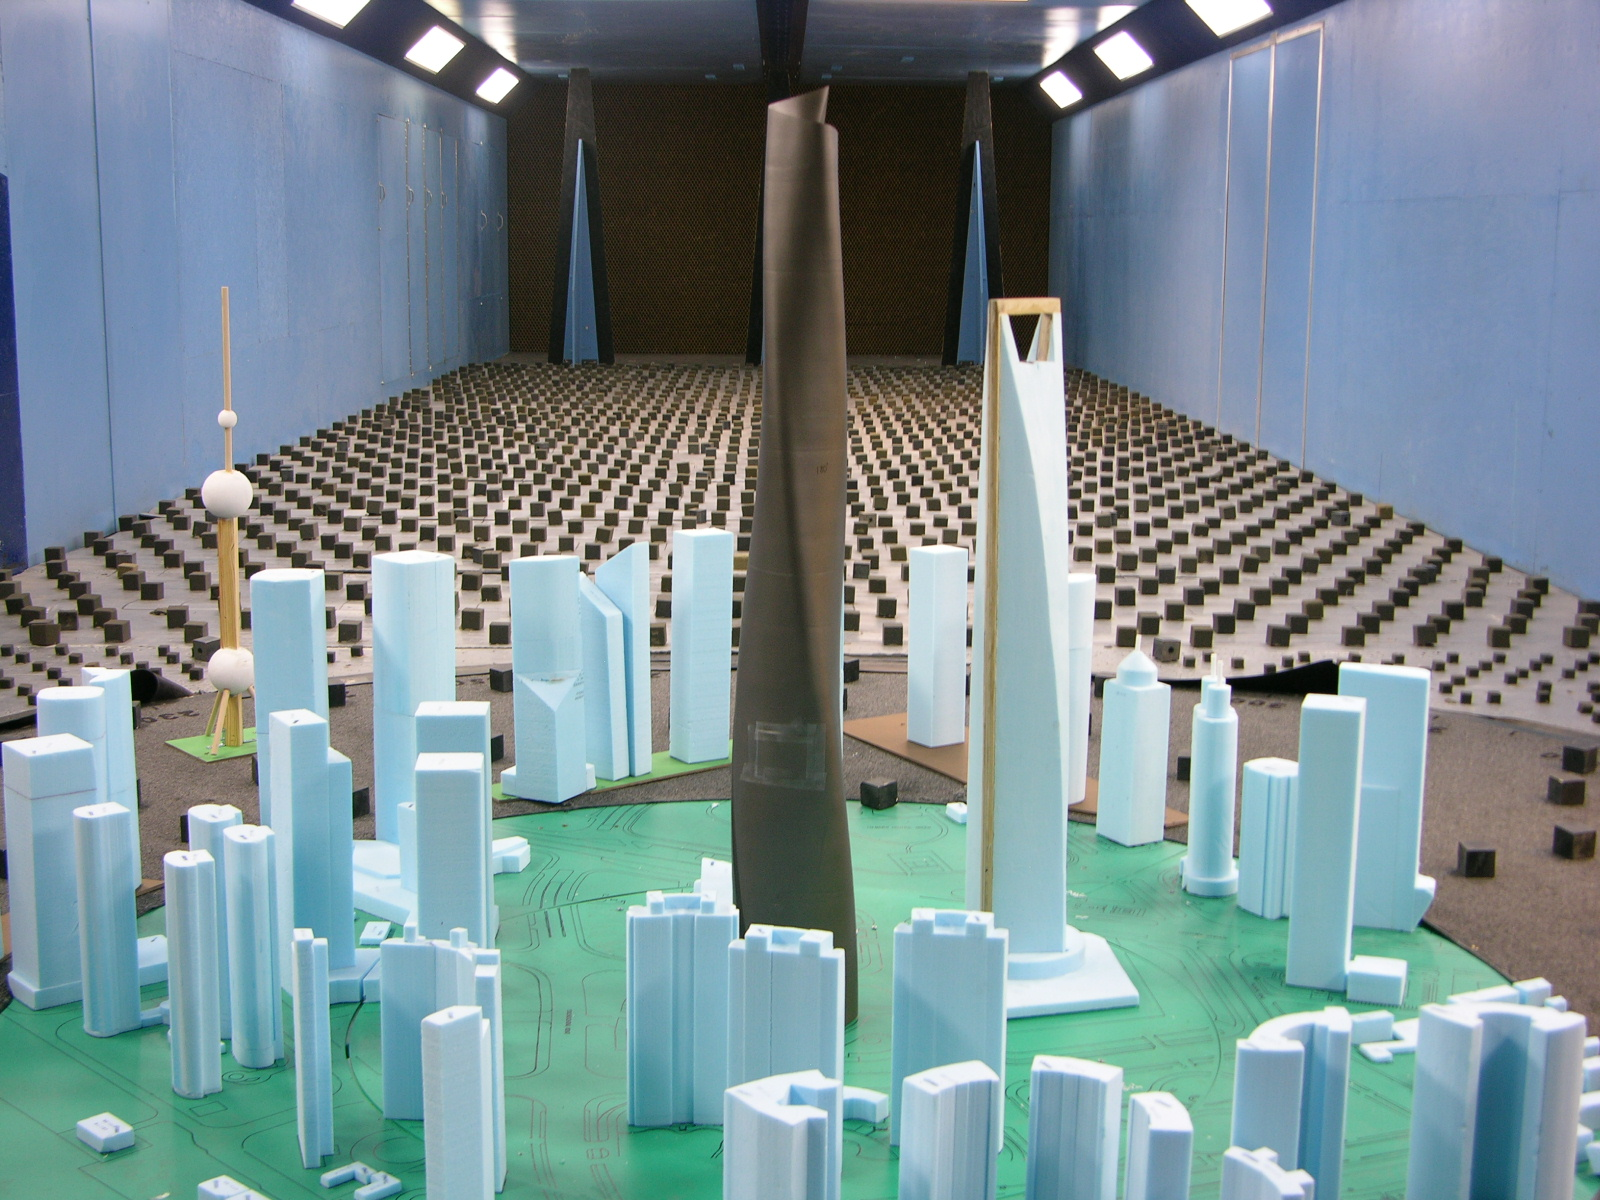 shanghai tower model in wind tunnel